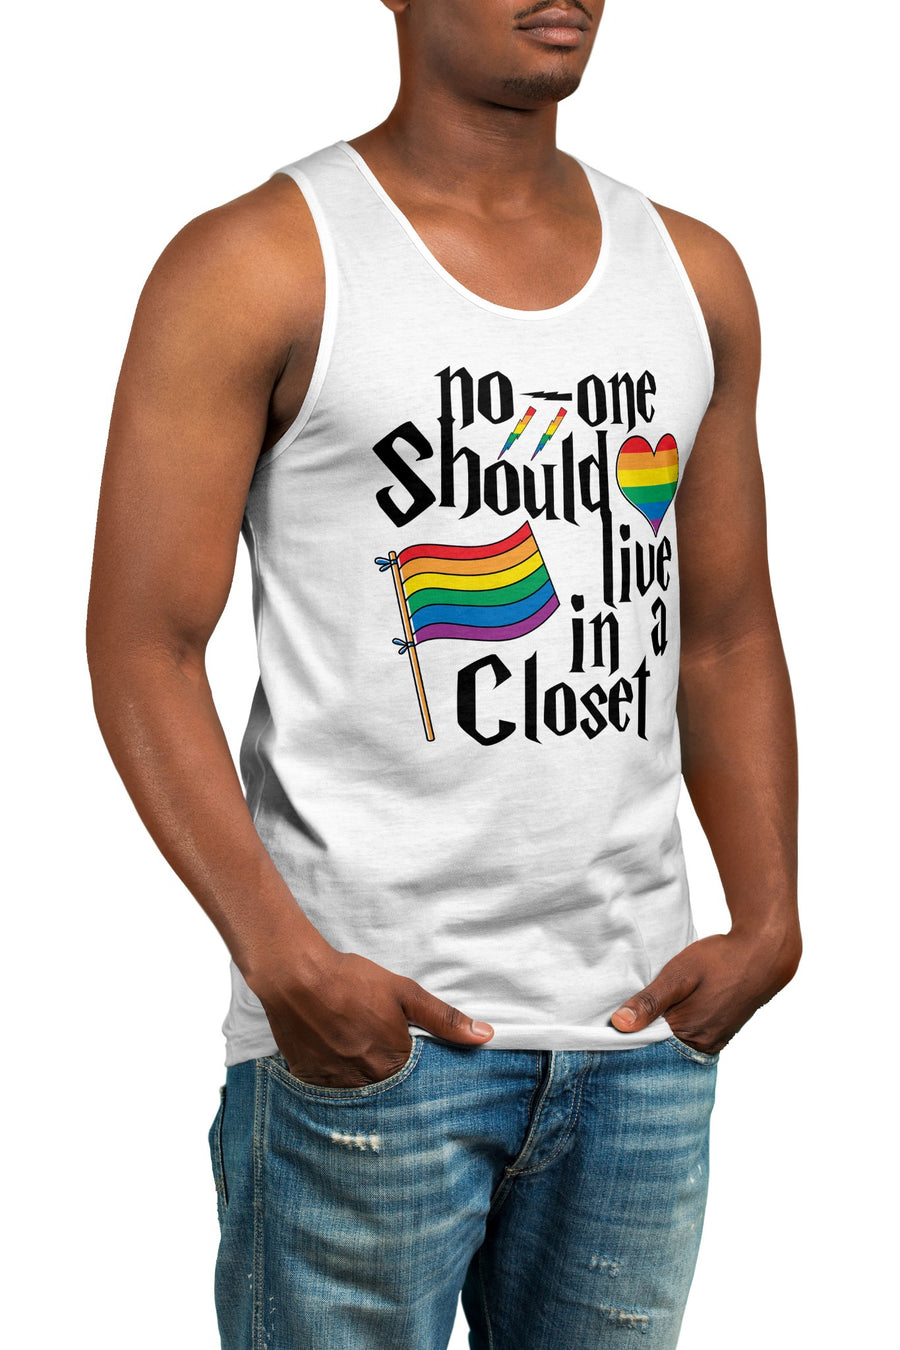 No One Should Live In A Closet Gay Pride Vest - LGBTQ Parody Tank Top For Men Women Kids